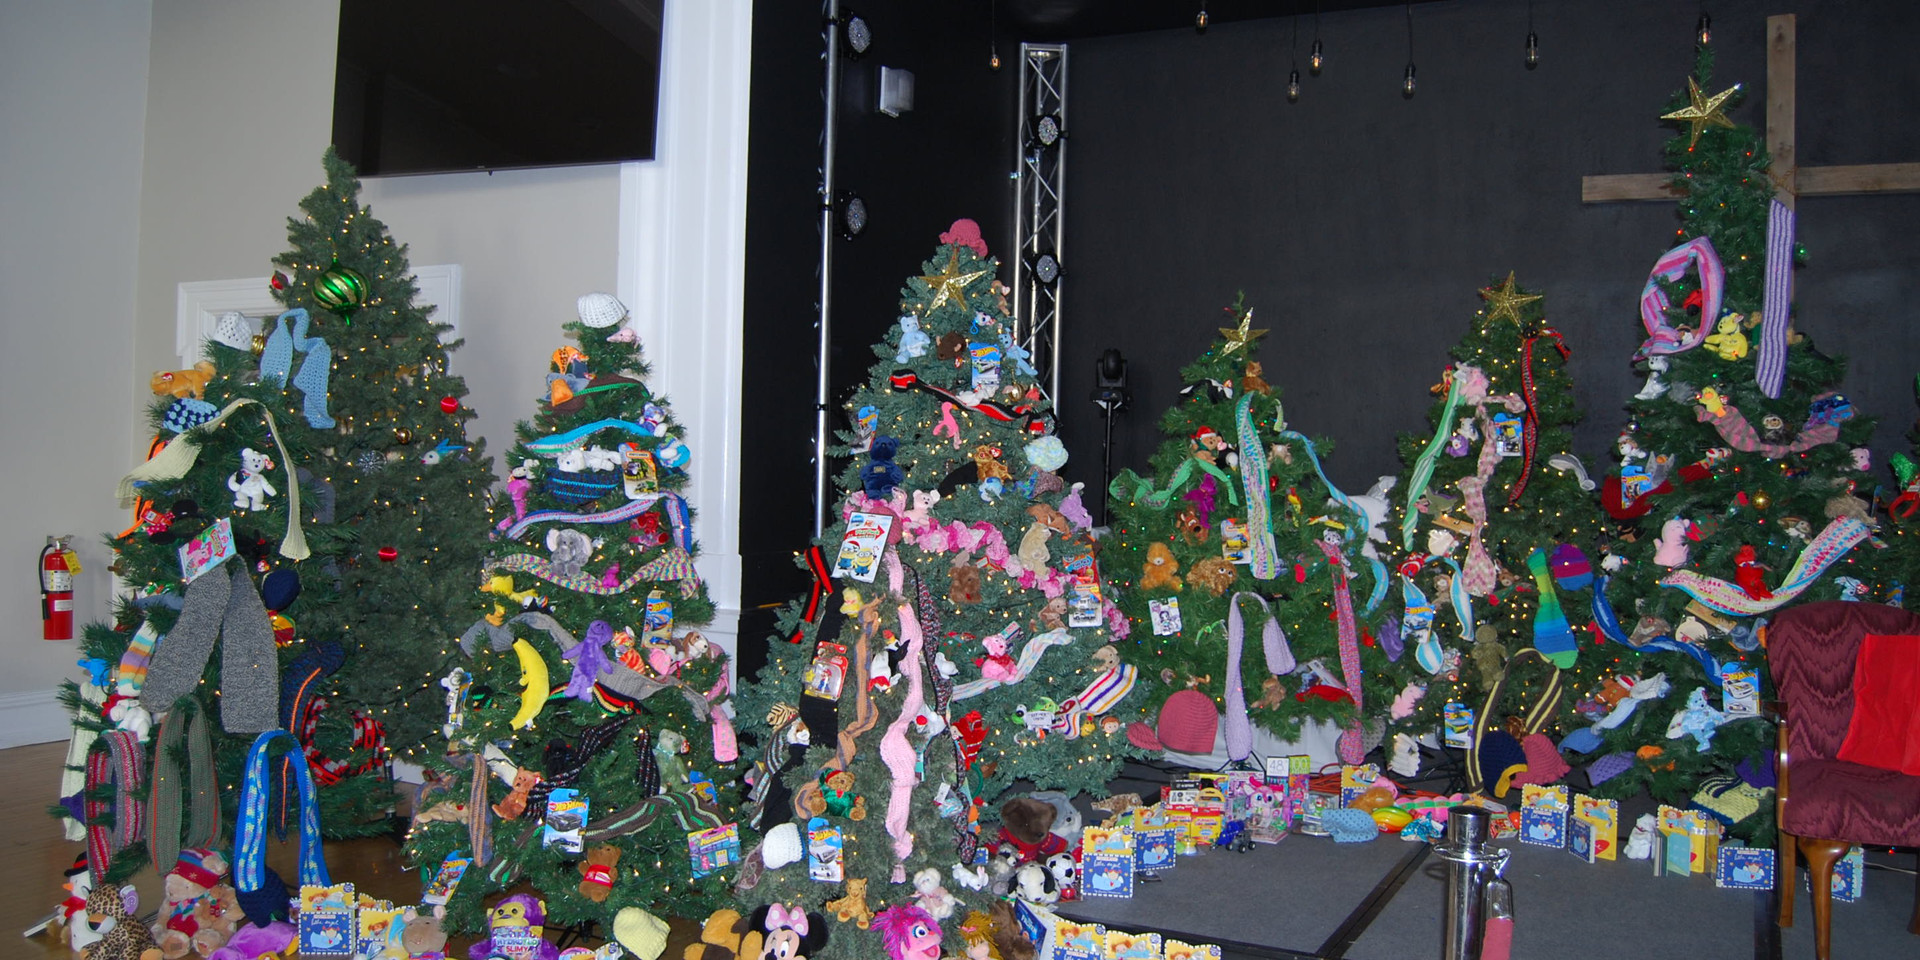 Thank you to everyone who spent months knitting scarfs and hats for the trees...every child got to pick one. Special thank you to Mary Lou Hutchinson who made close to 100 scarfs! A knitting group at the Highlands donated scarfs for the first time this year.